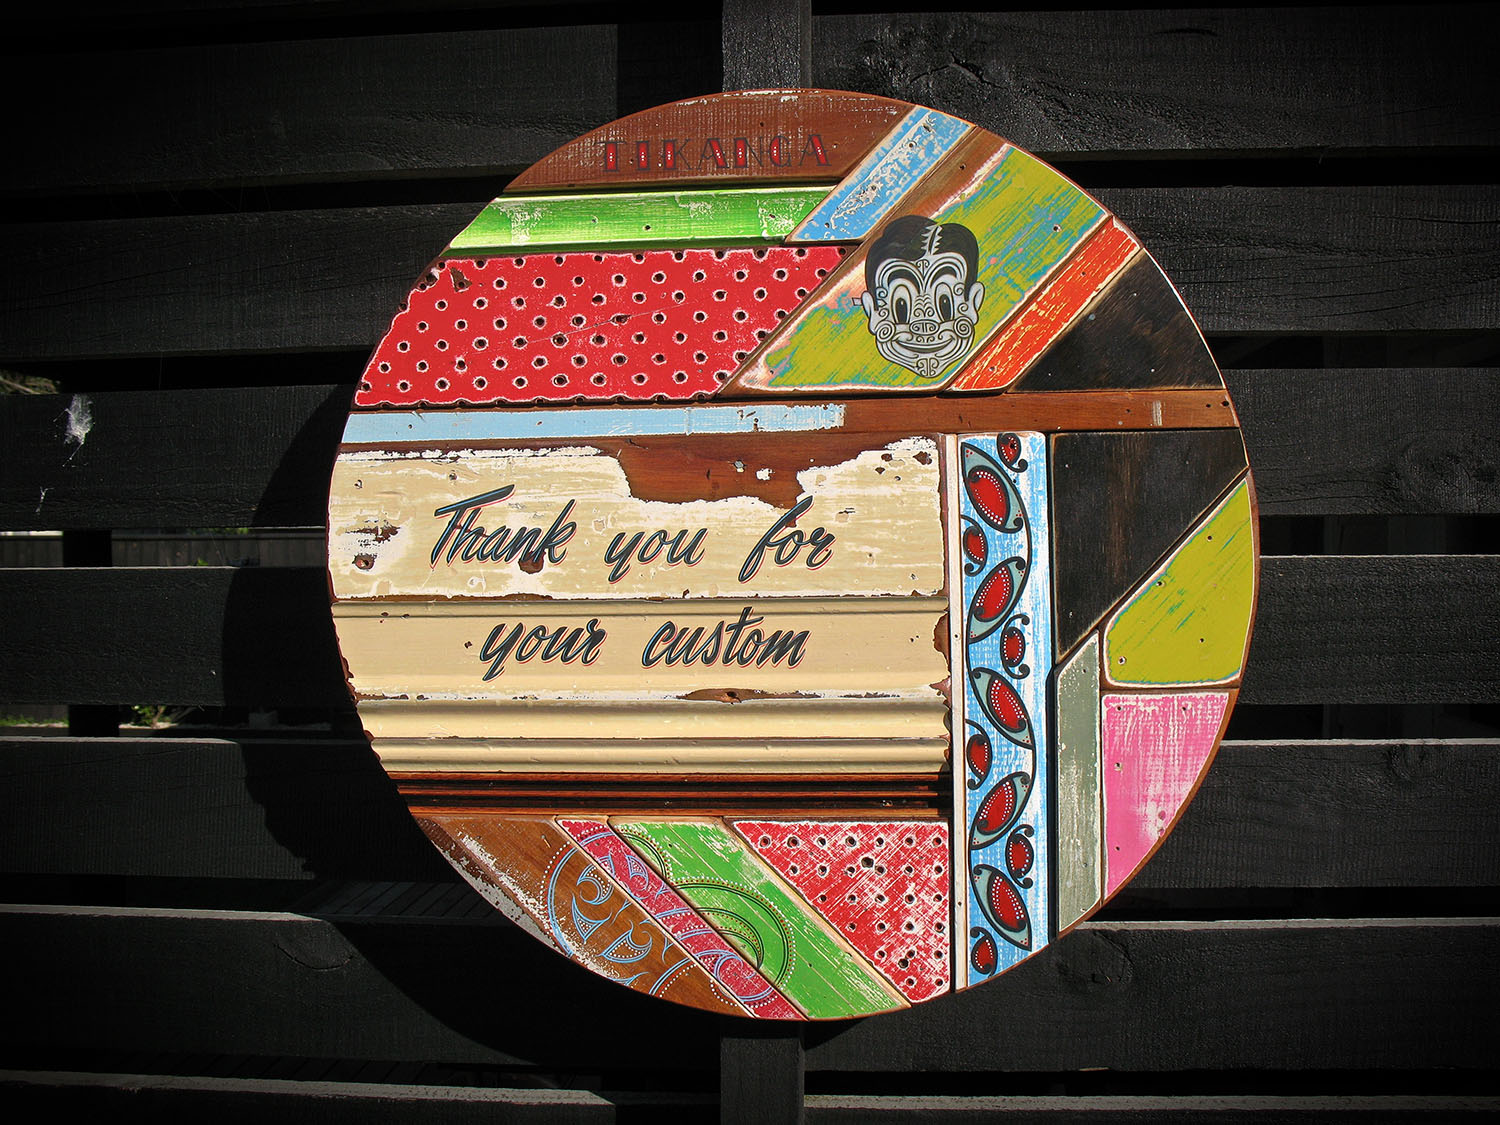 Thank-you-for-your-custom-round-art-work-by-Tony-Harrington